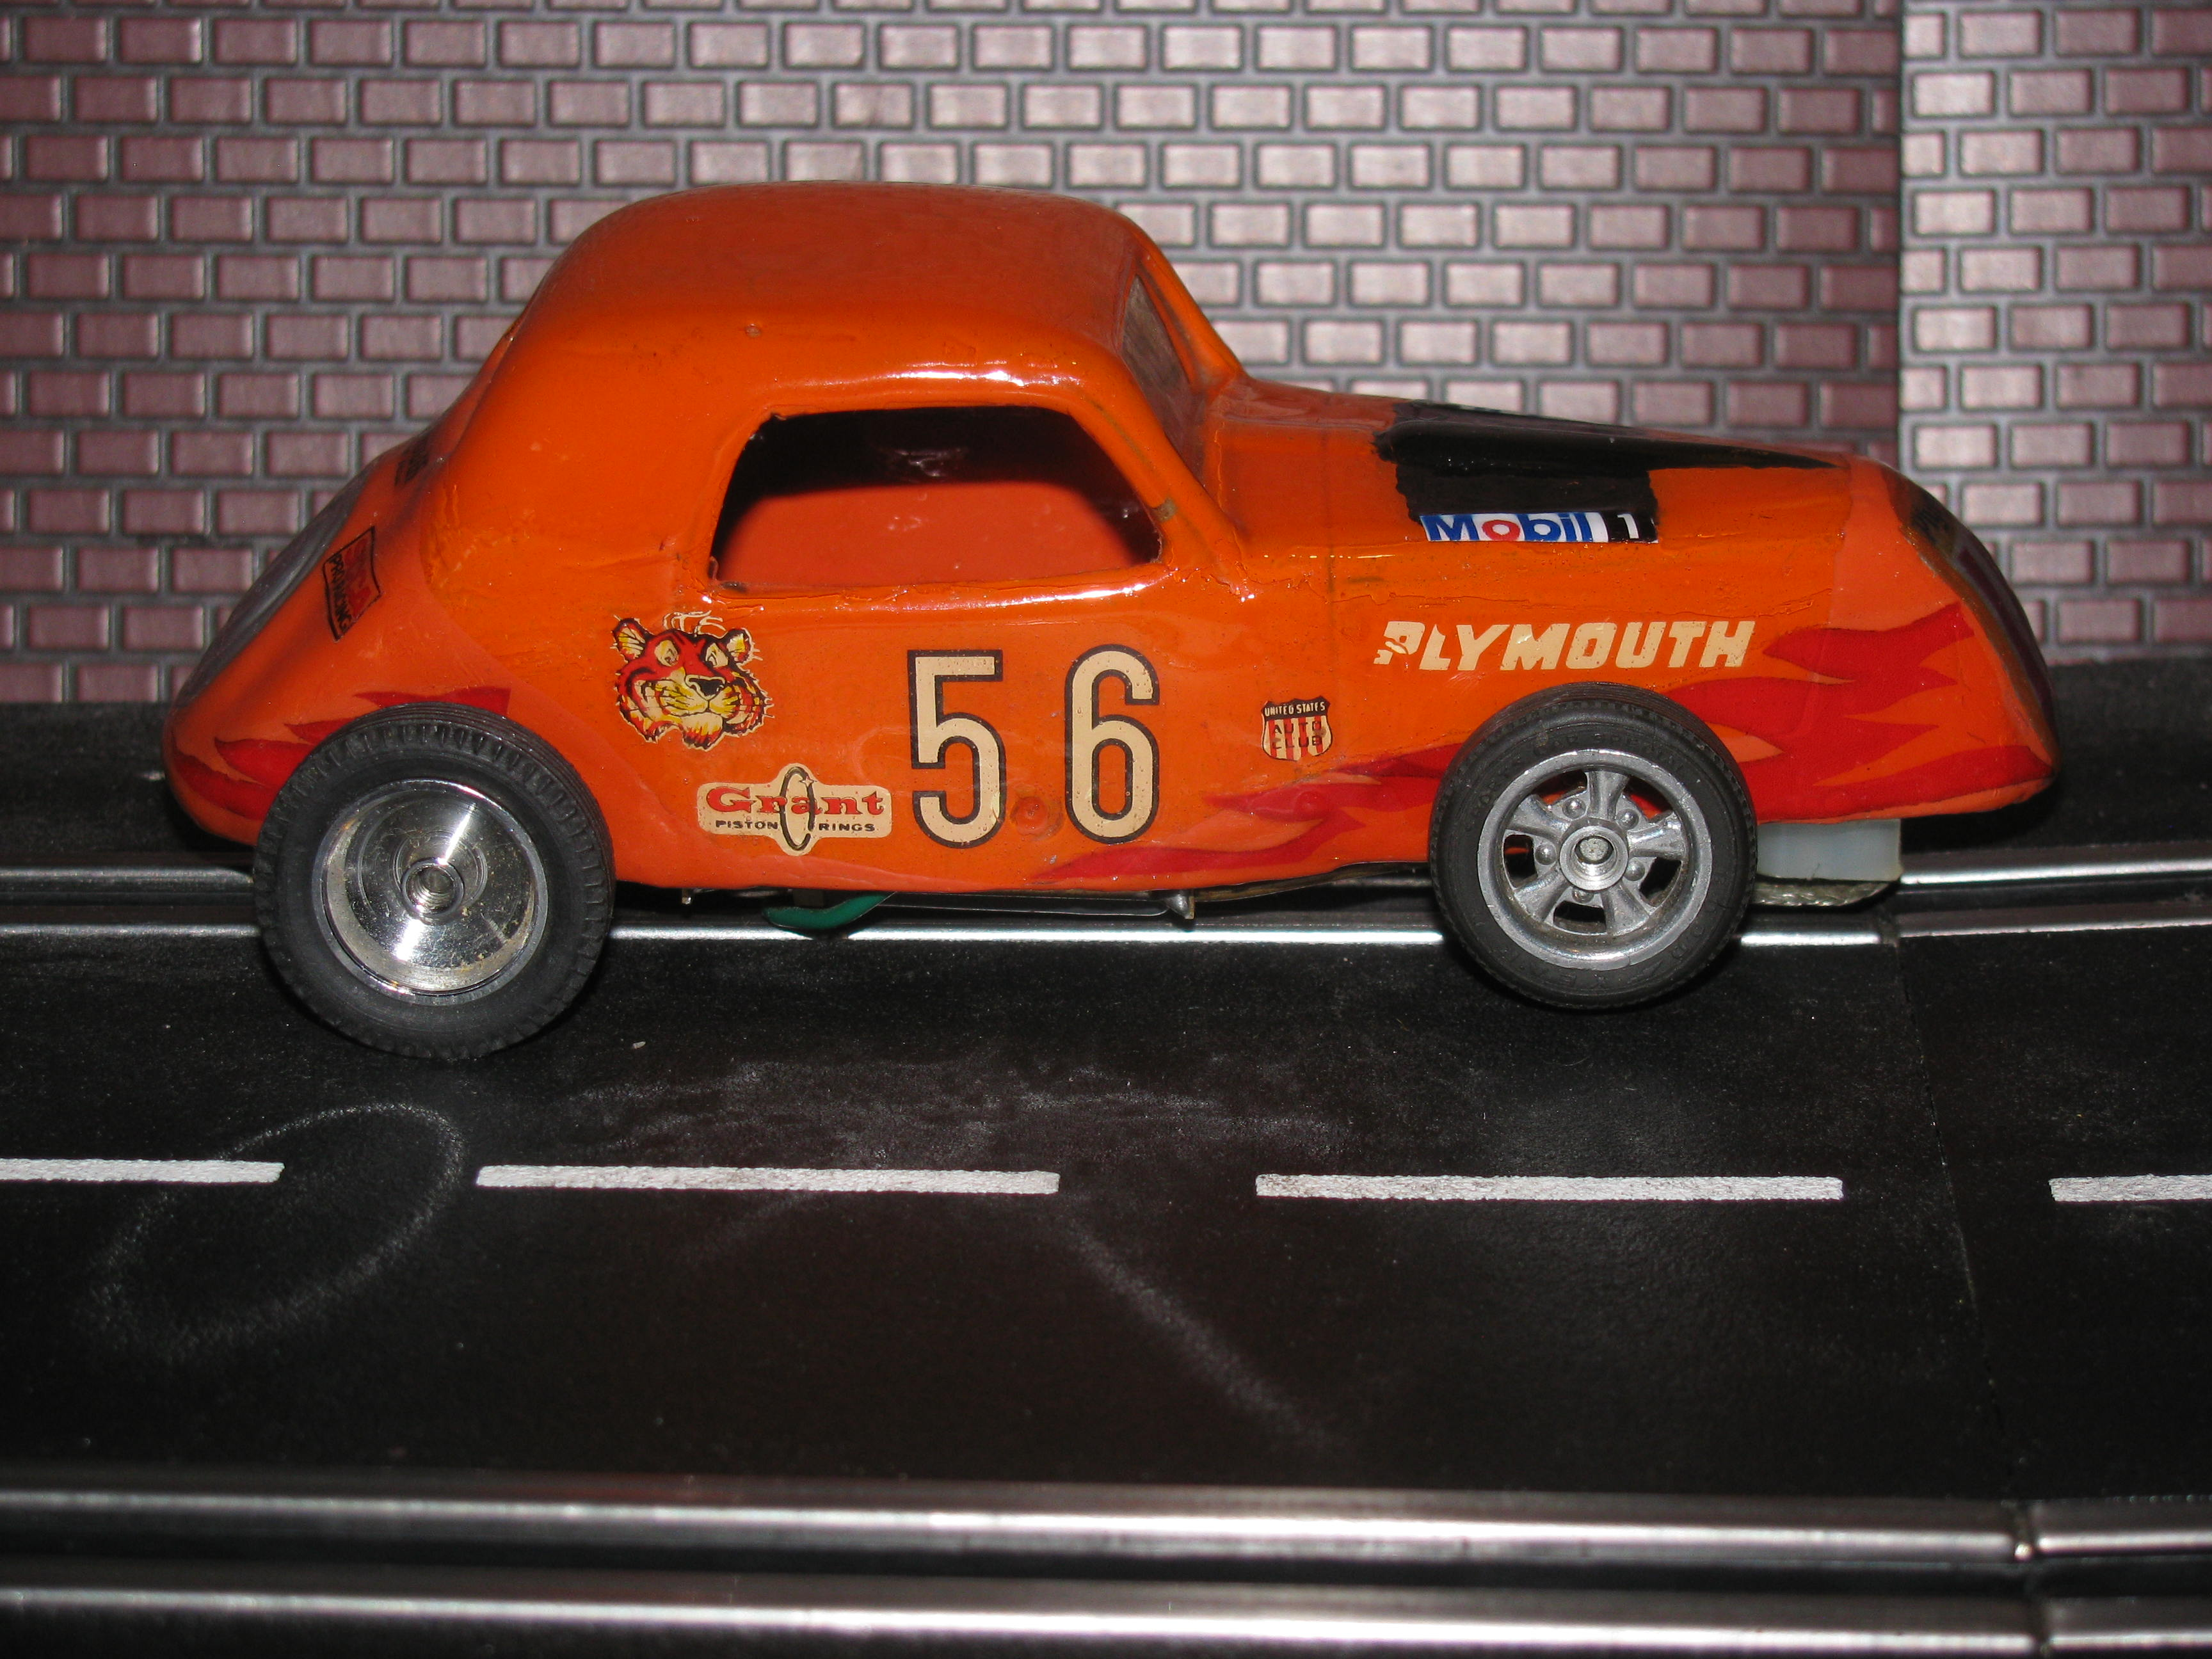 Vintage Plymouth Roadster with Aristo-craft chassis  - Orange Car 56 - 1/32 Scale